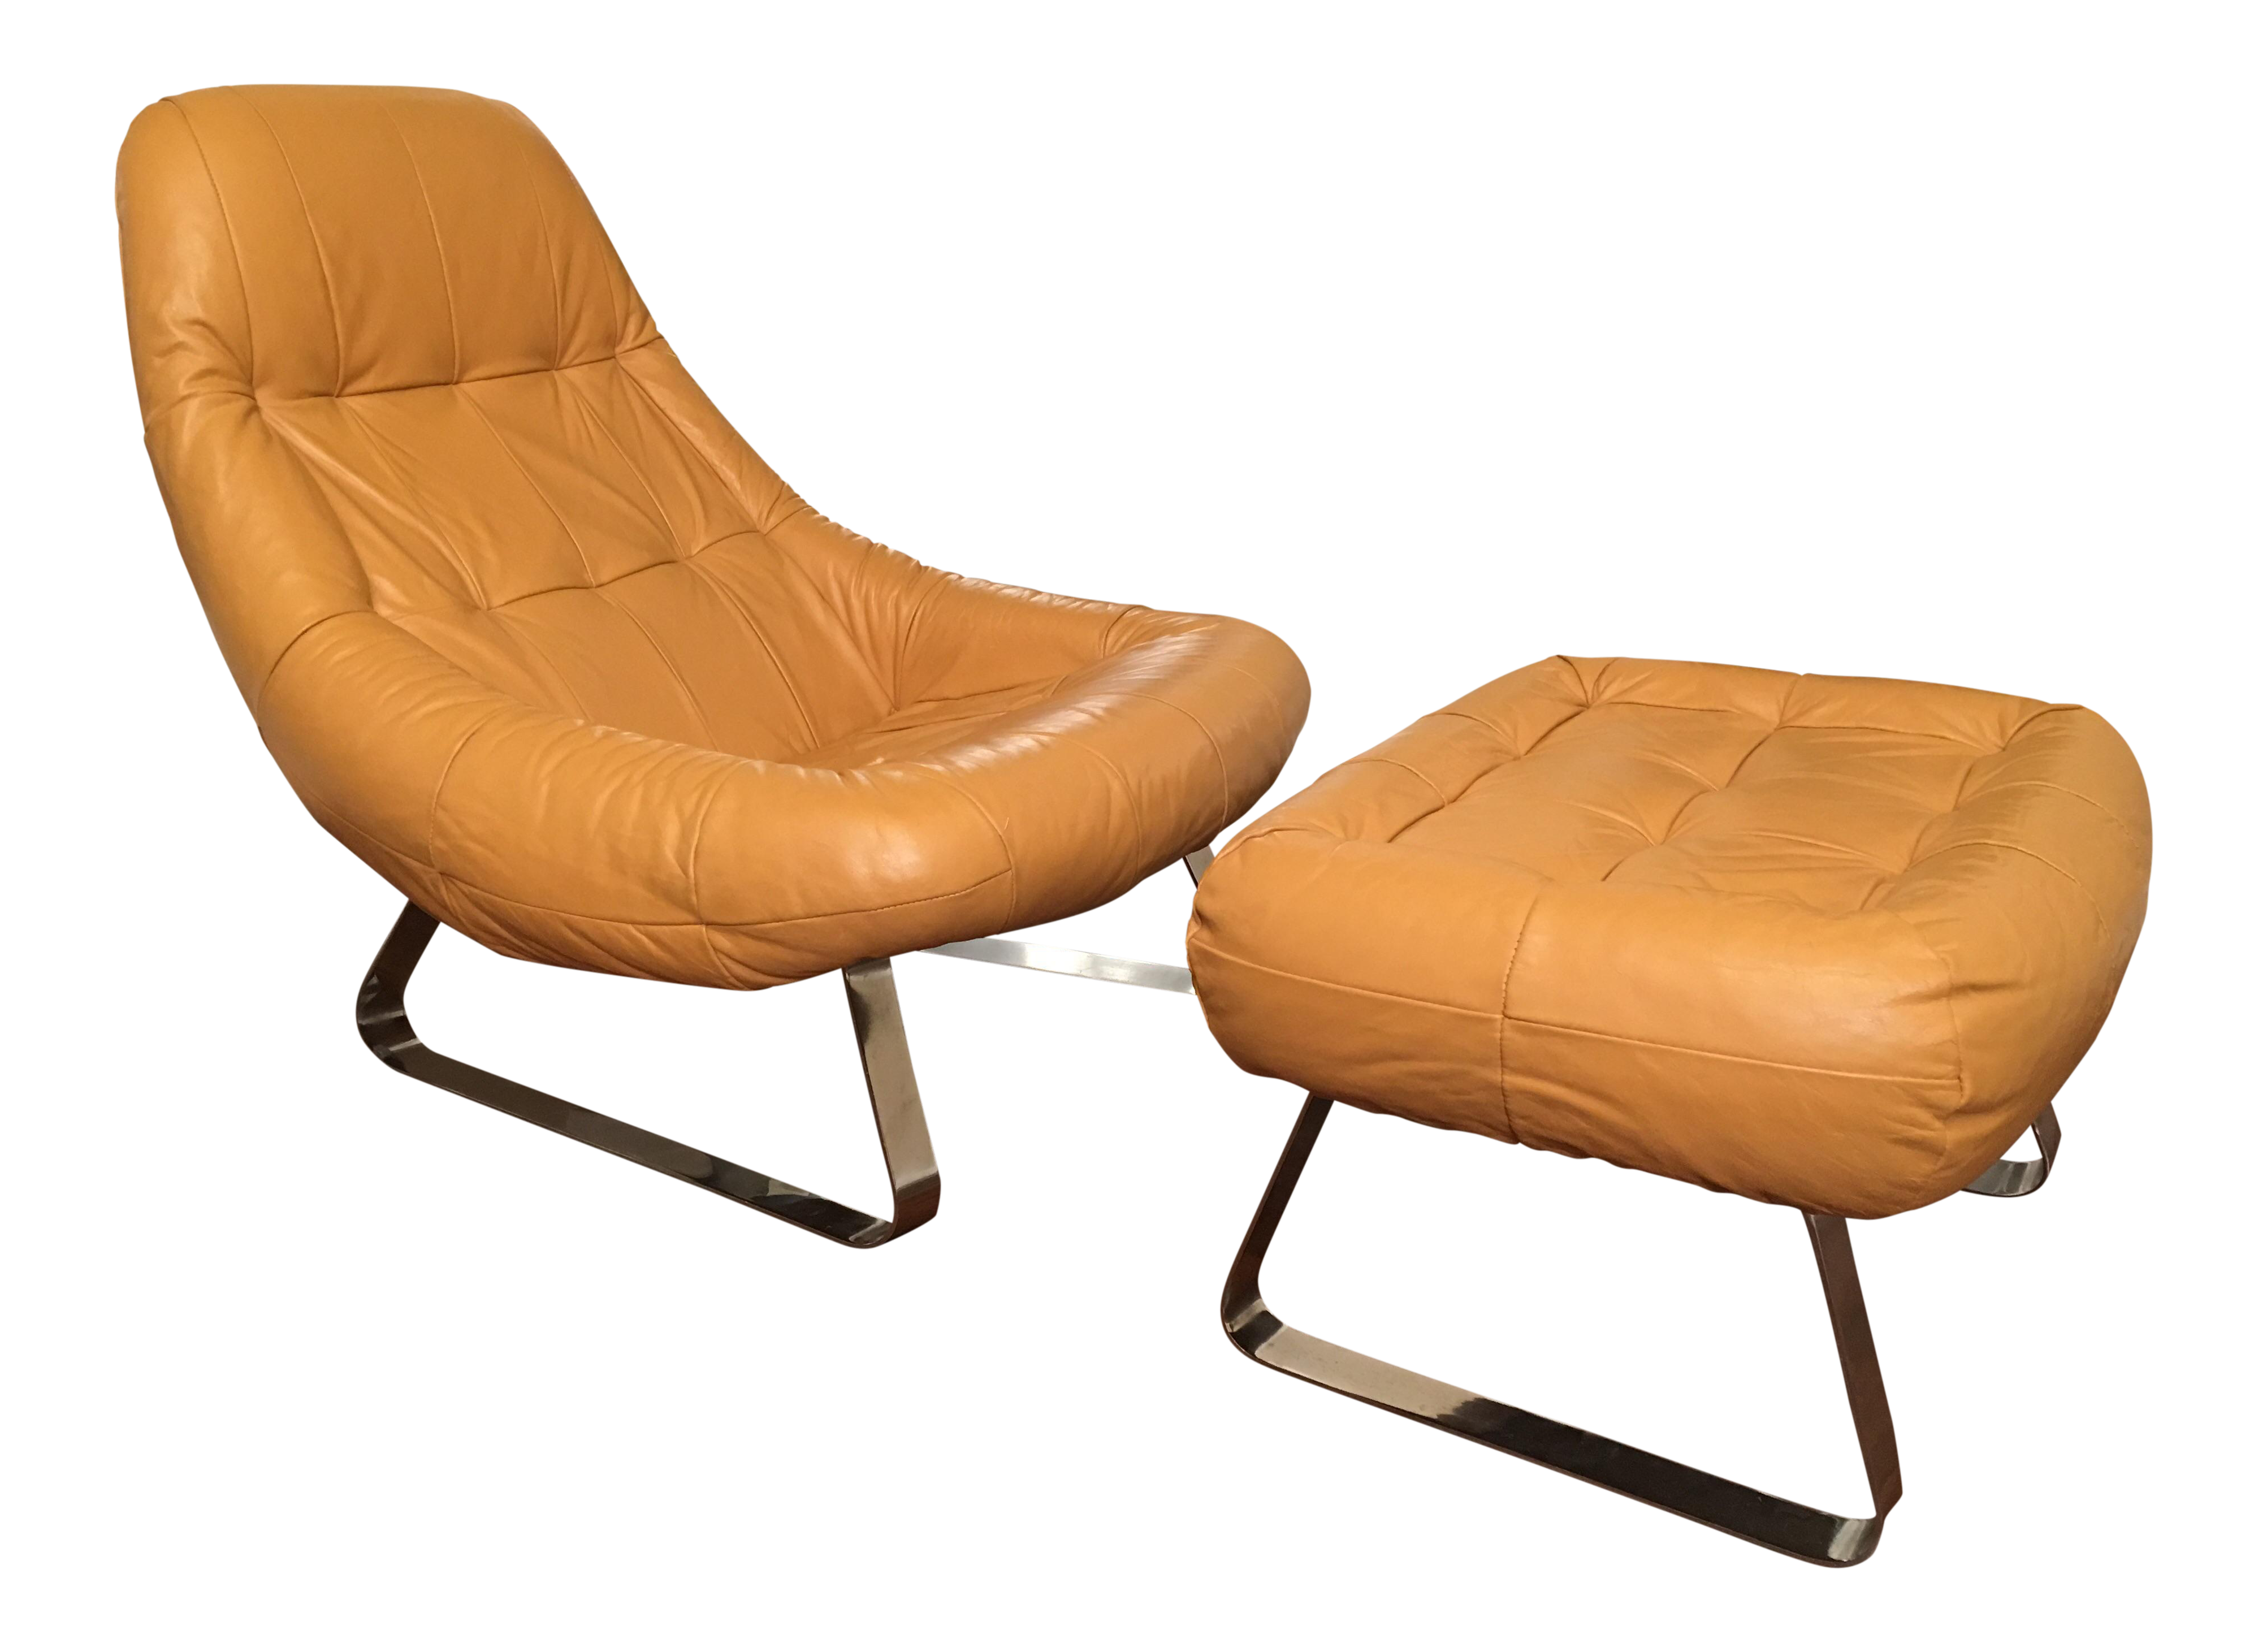 Charmant Percival Lafer Earth Chair U0026 Ottoman Mid Century Modern For Sale